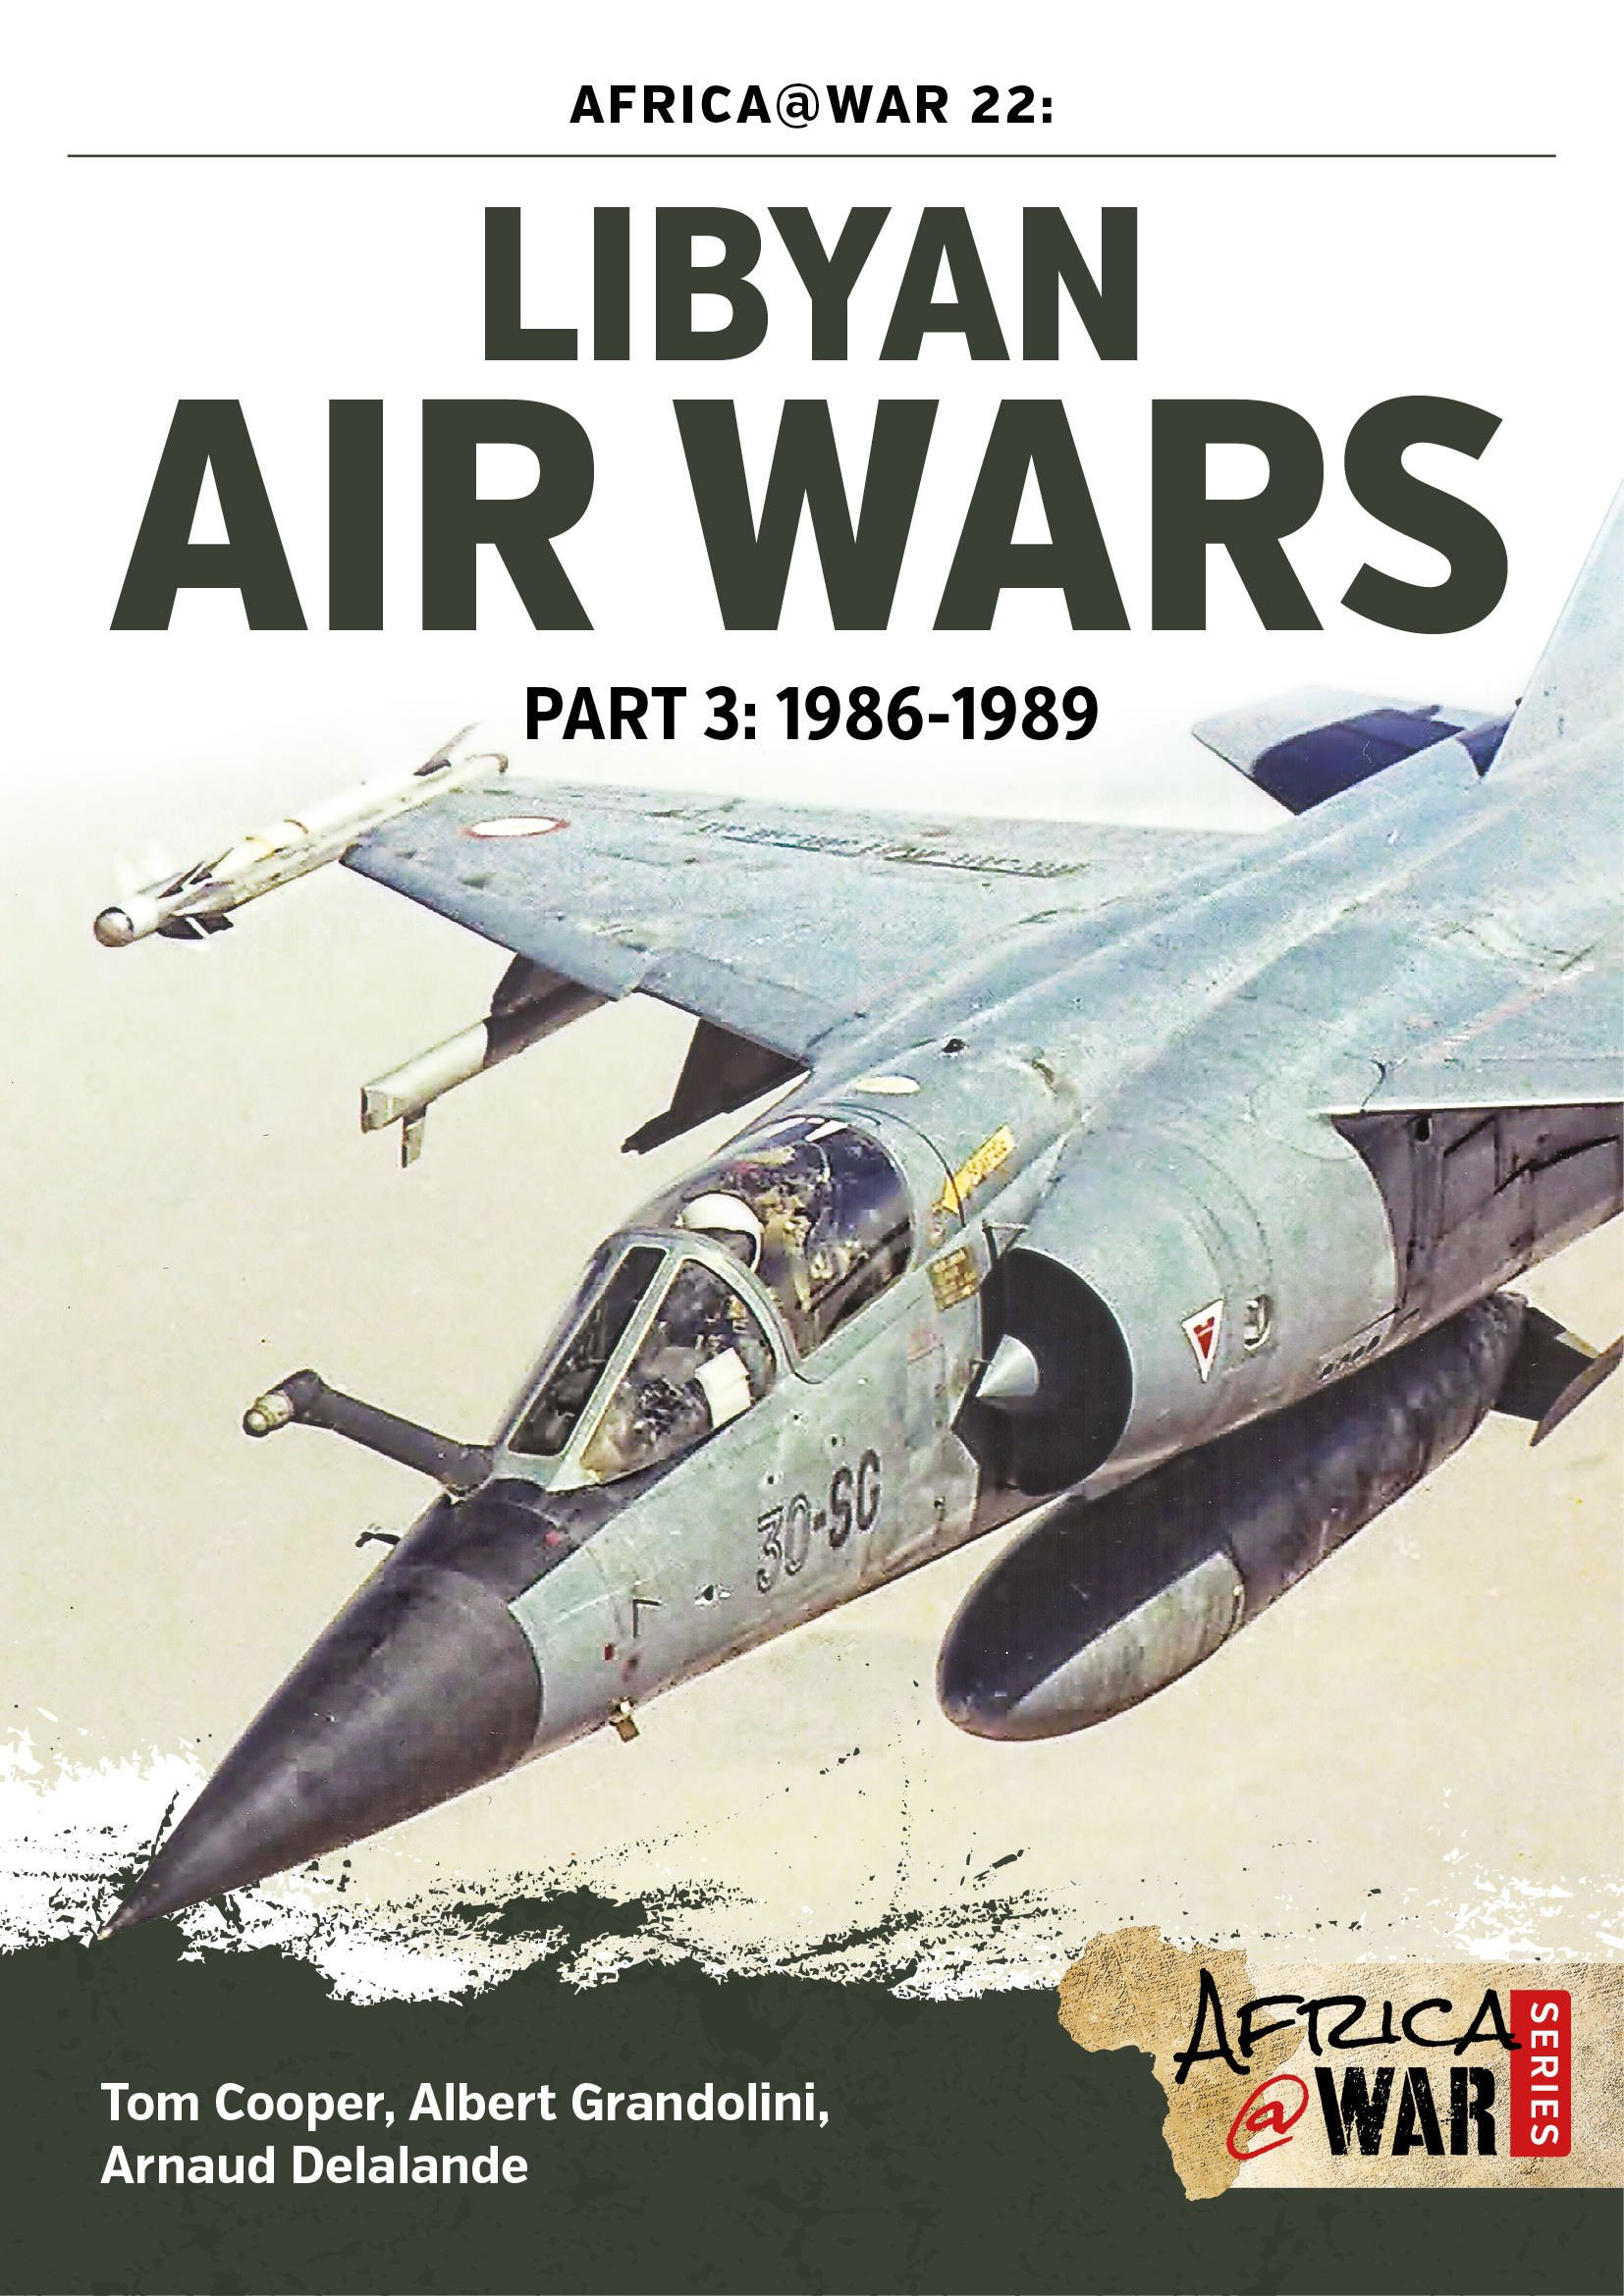 Libyan Air Wars. Part 3: 1986–1989 (Africa@War) PDF